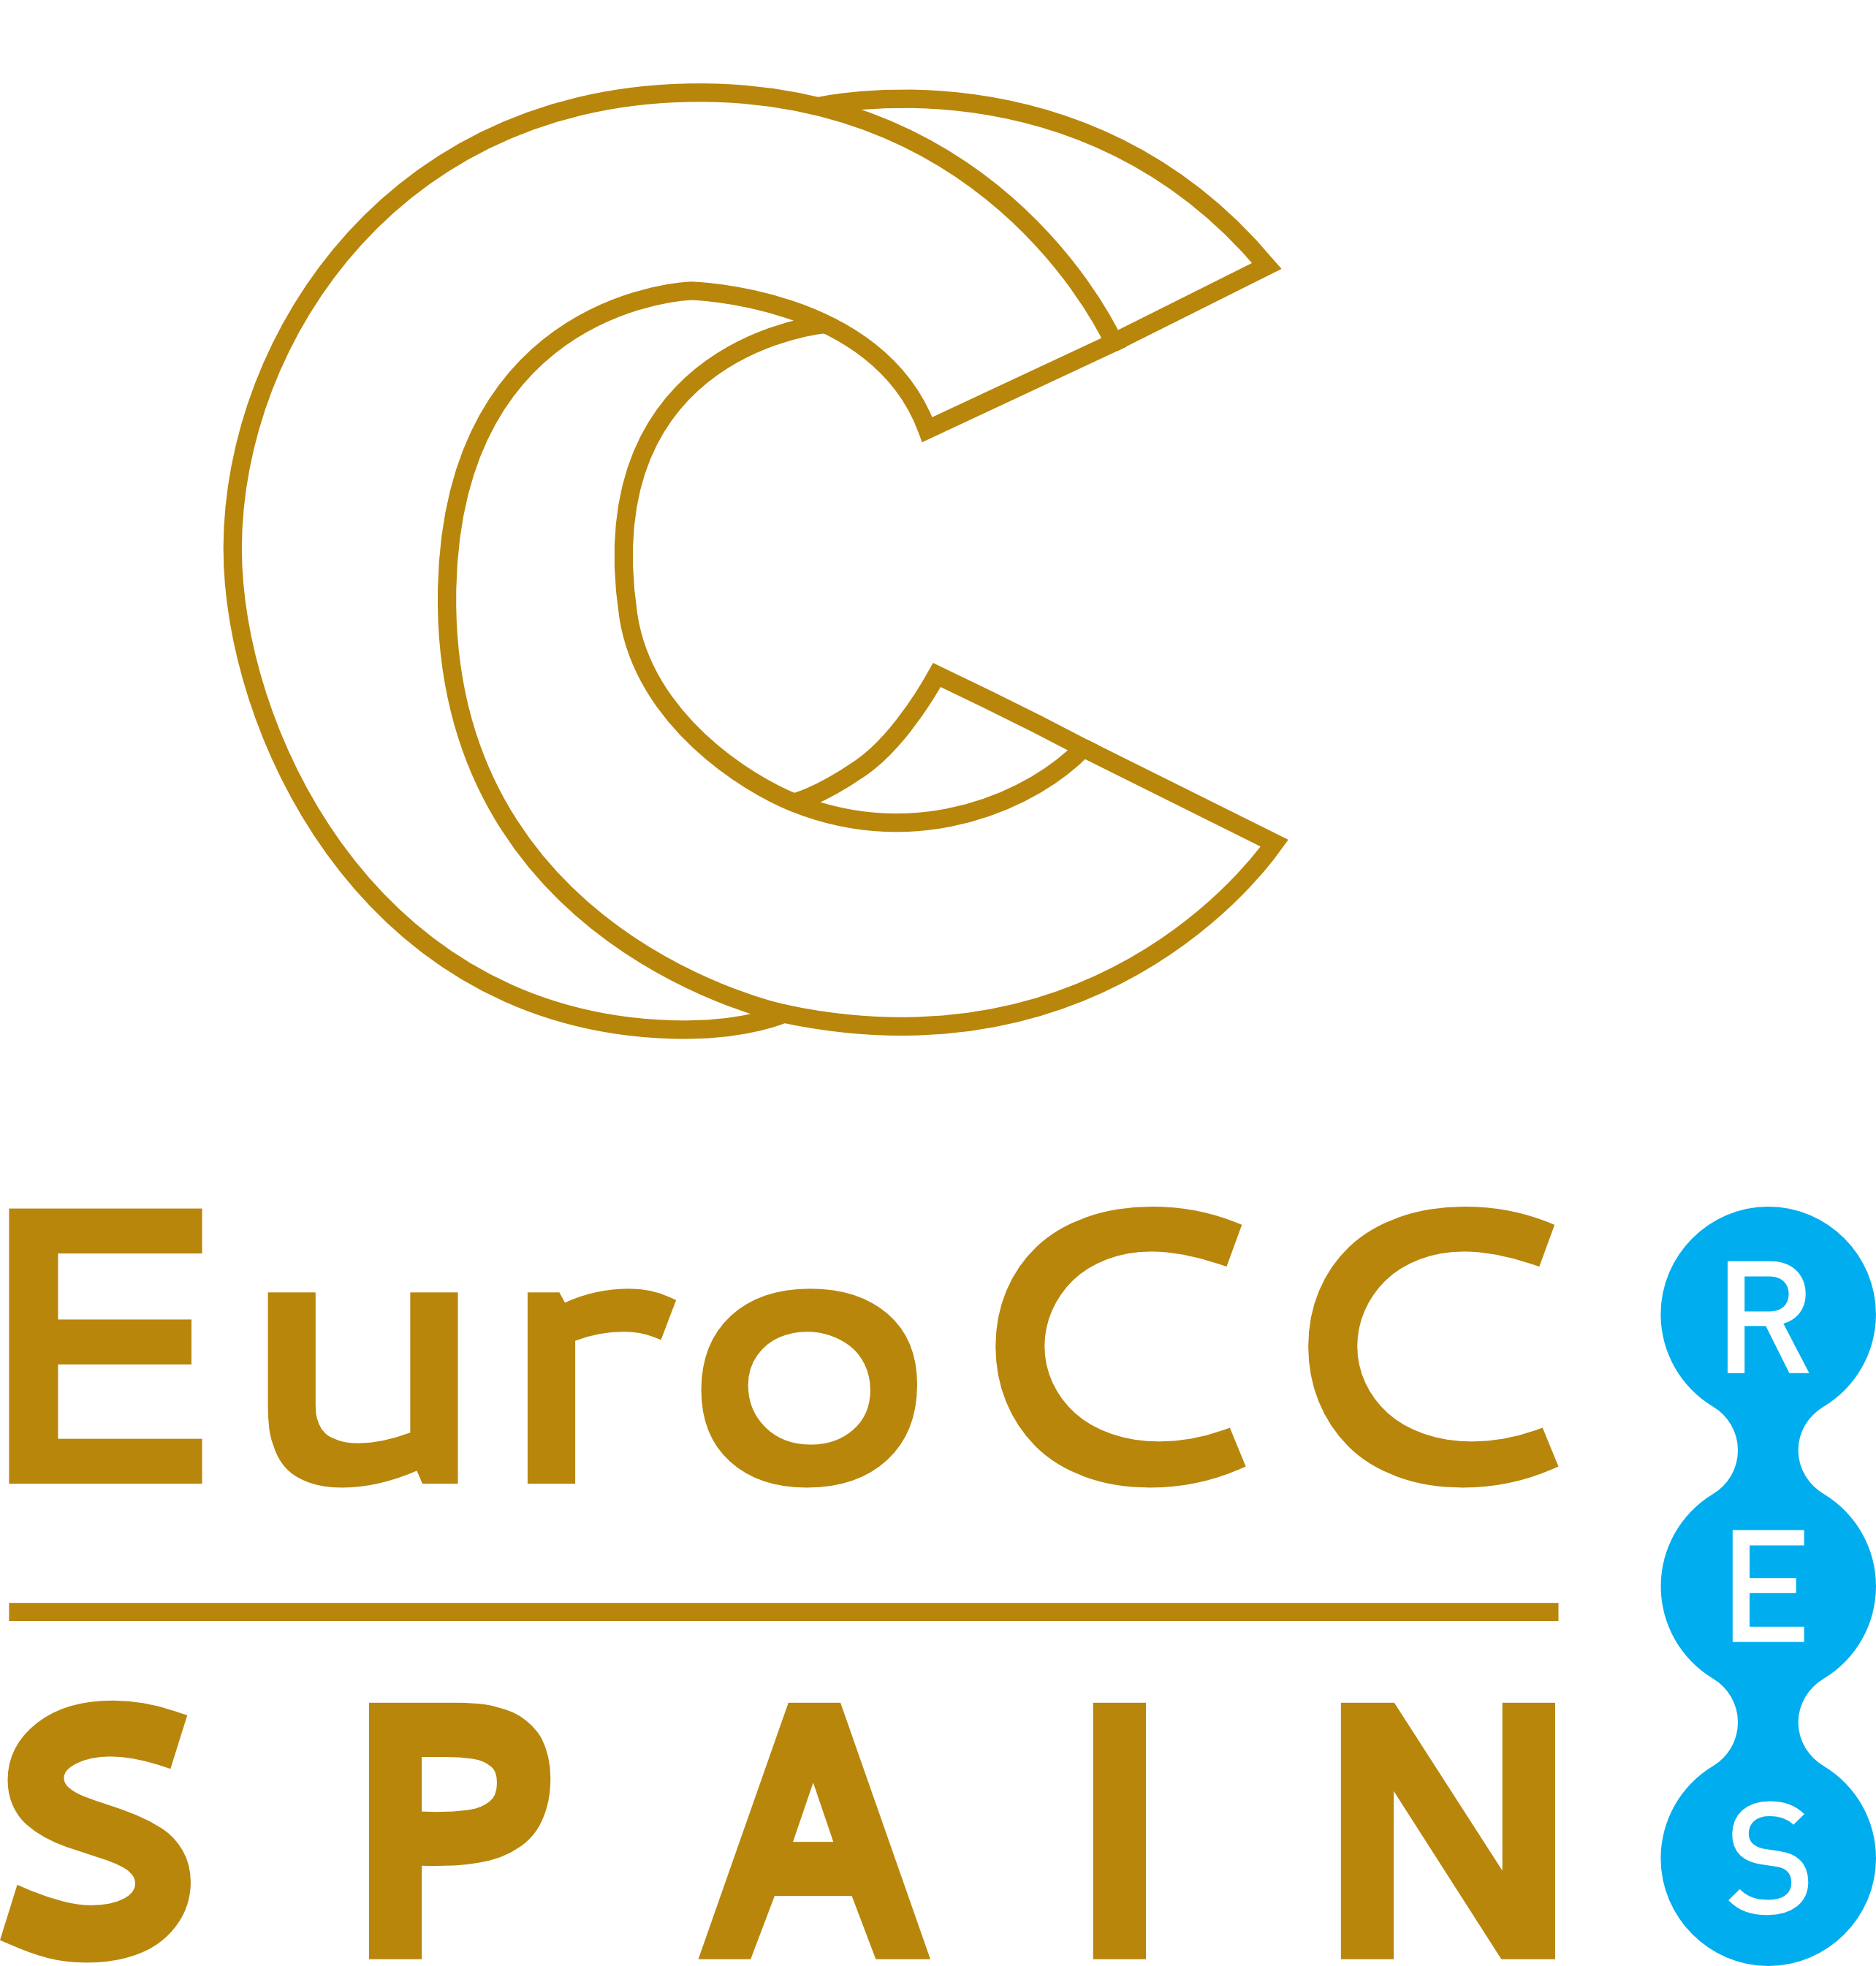 LOGOTIPO EURO CC RES SPAIN